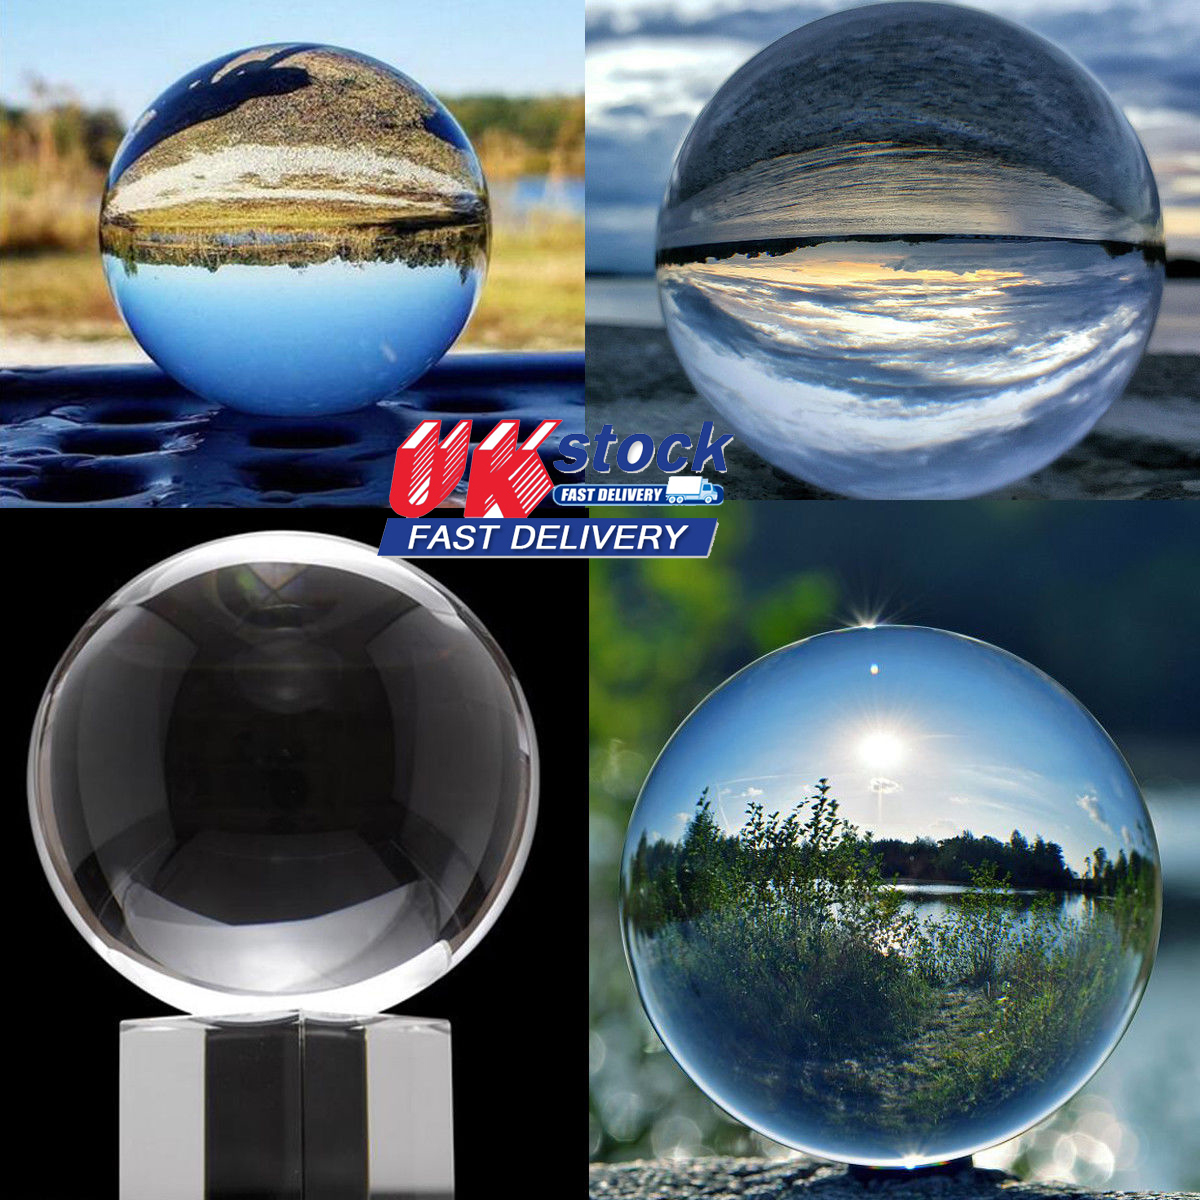 Photography Crystal Ball Clear Glass Sphere Transparent Lensball Photo Prop Lens